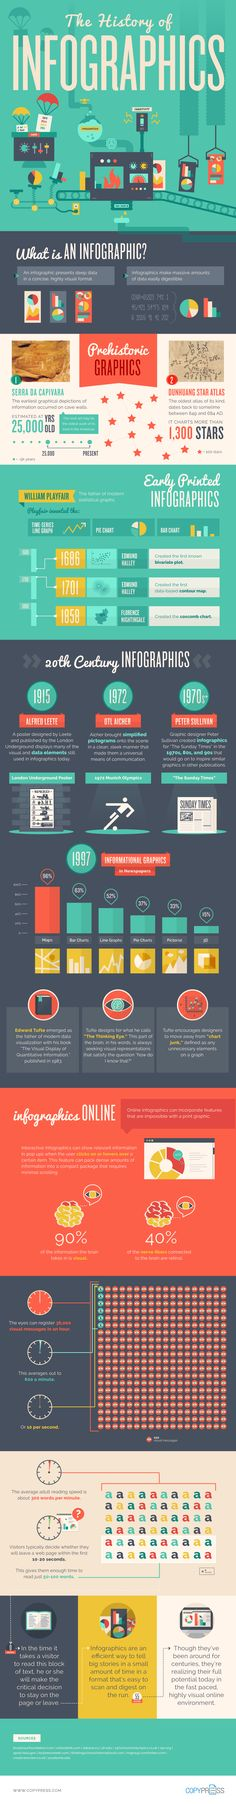 Learn the History of Infographics the Best Way Possible… With an Infographic